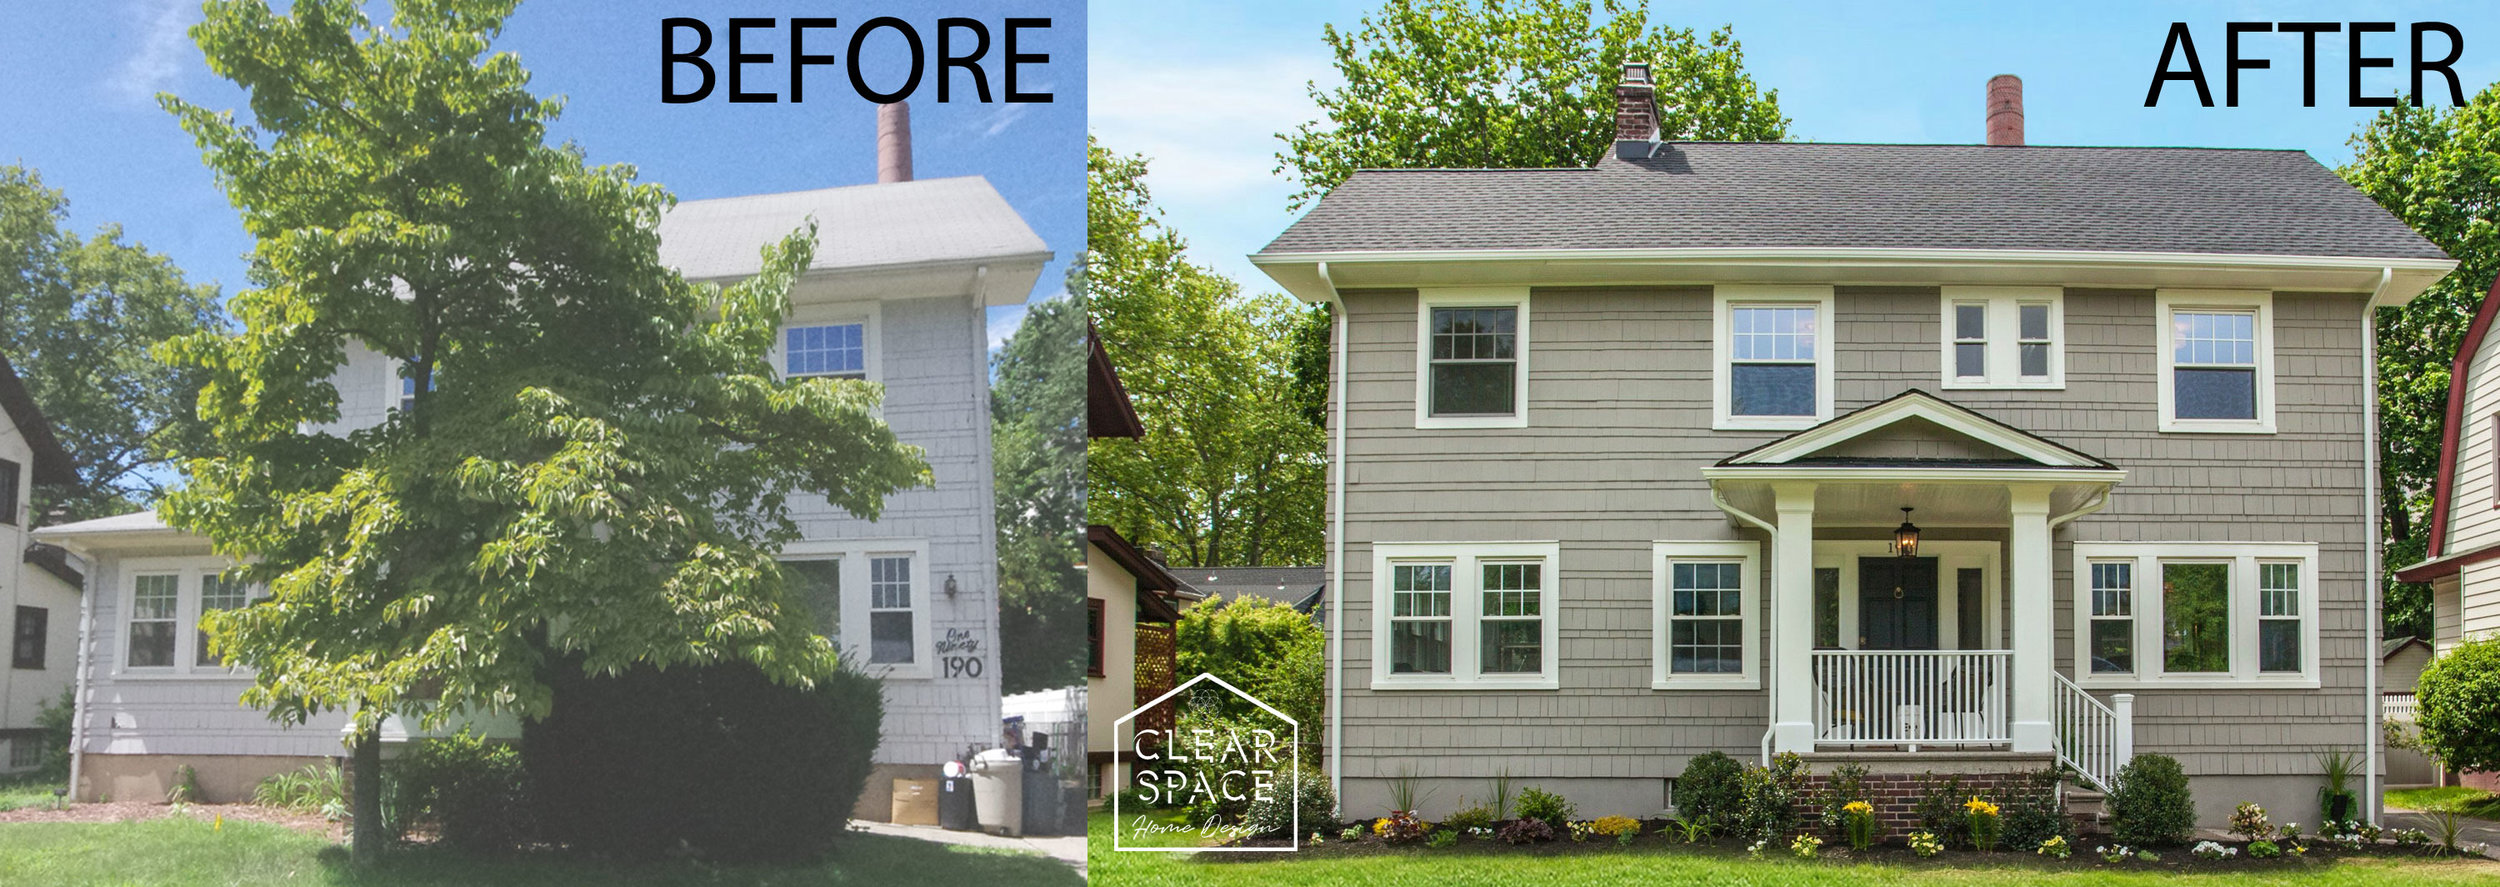 Here's a before and after of the exterior at 190 Sherman Avenue in Glen Ridge, NJ.  We removed the huge tree that completely blocked the front porch to create a welcoming entry.  We also added a second story addition to create a luxurious master bath and walk-in closet.